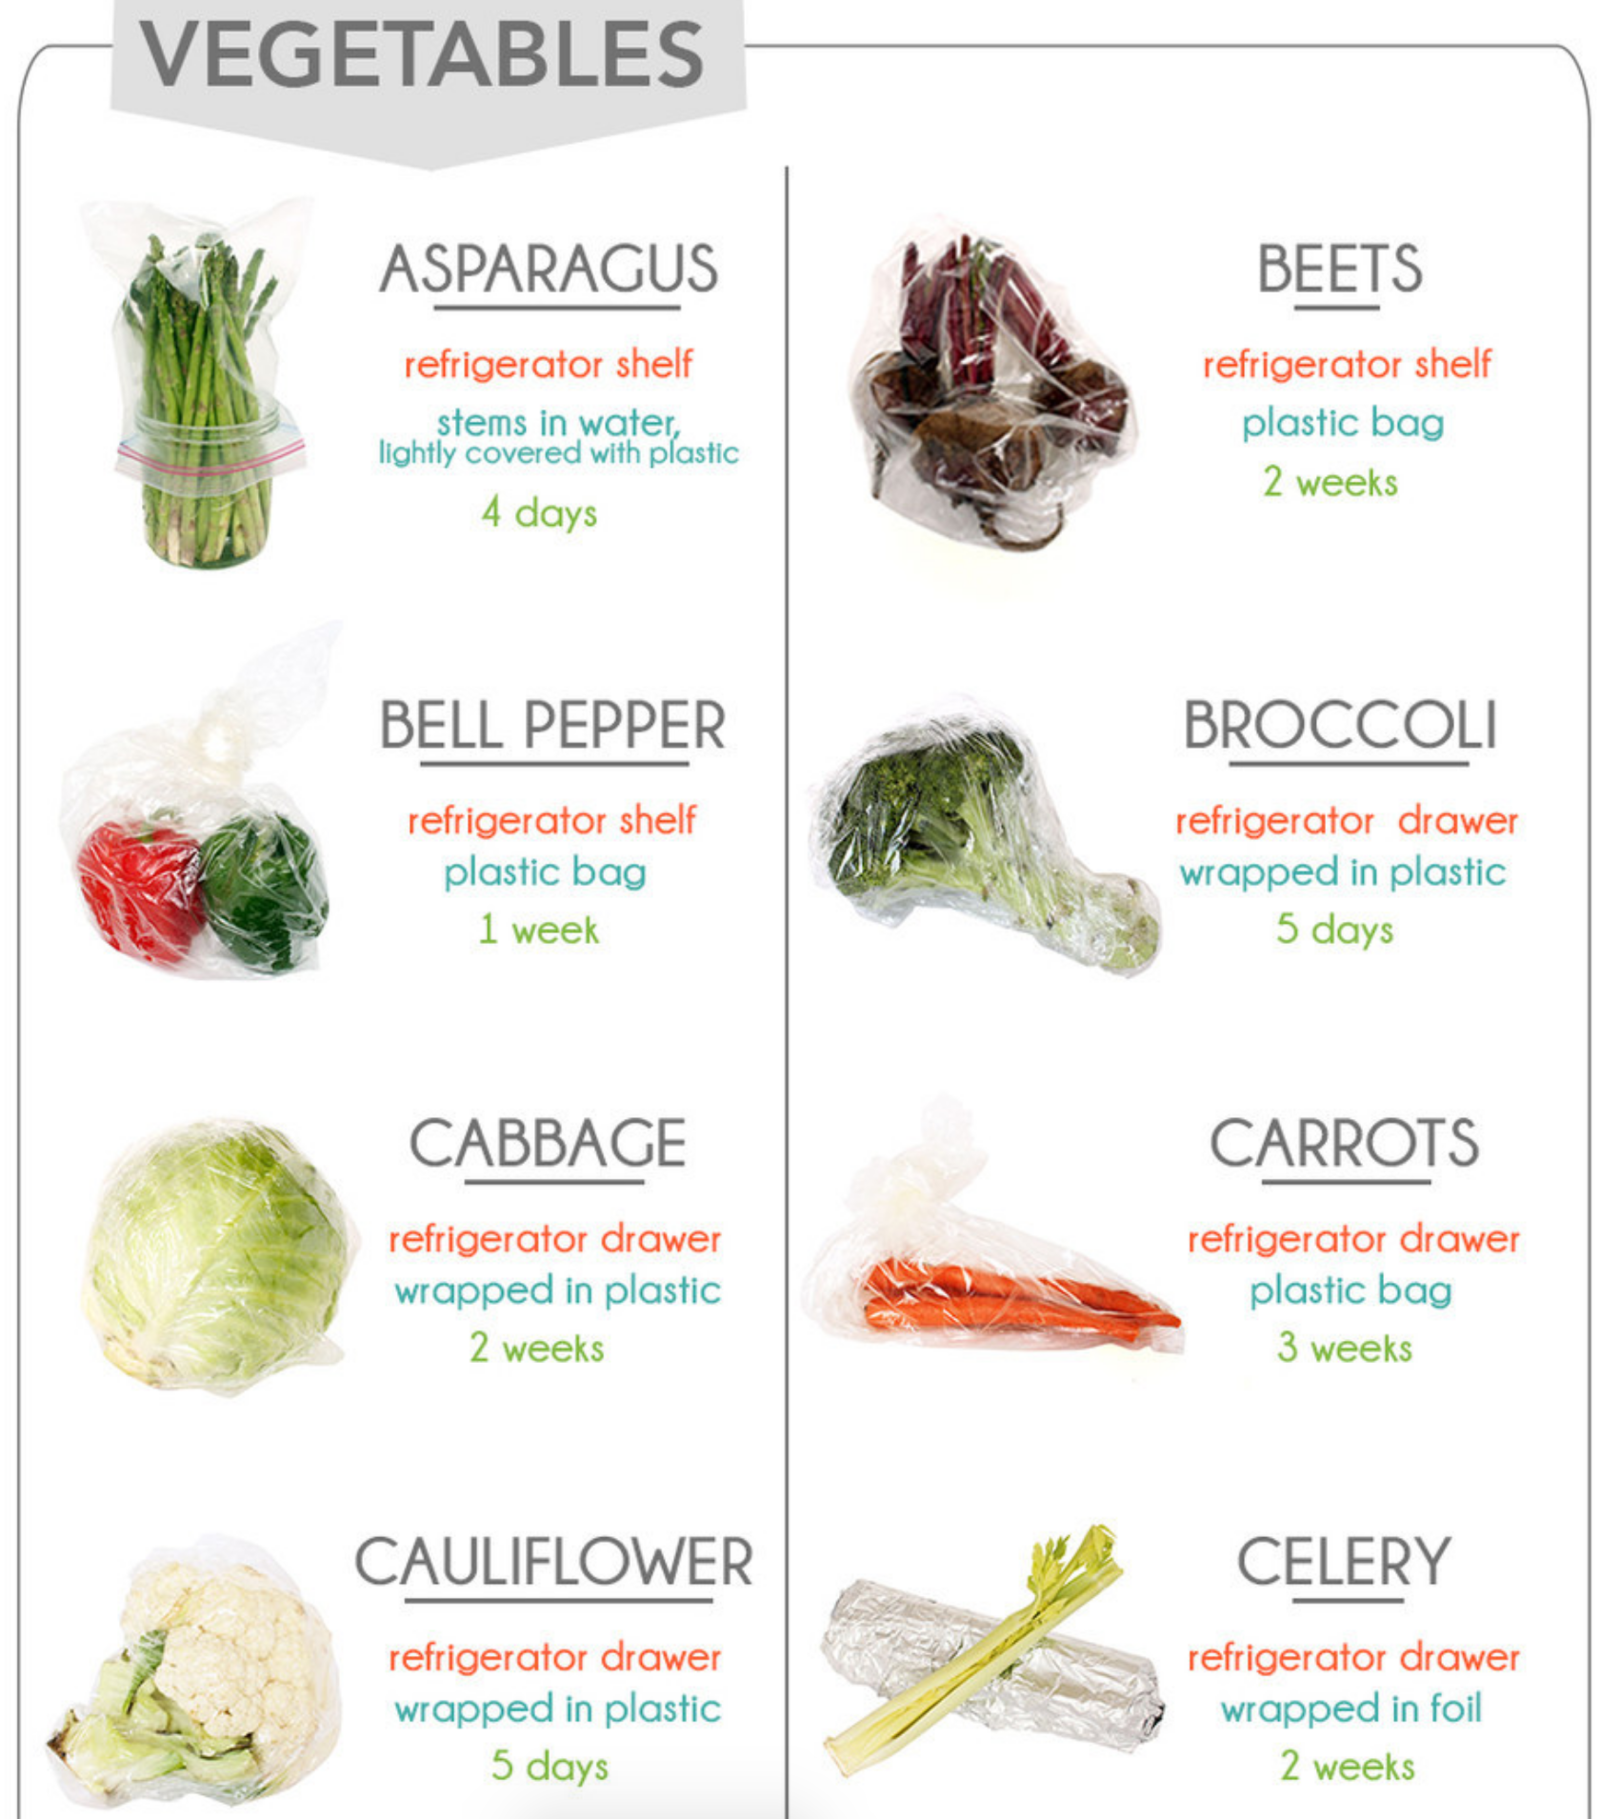 17 Cheat Sheets If You're Vegetarian Or Vegan